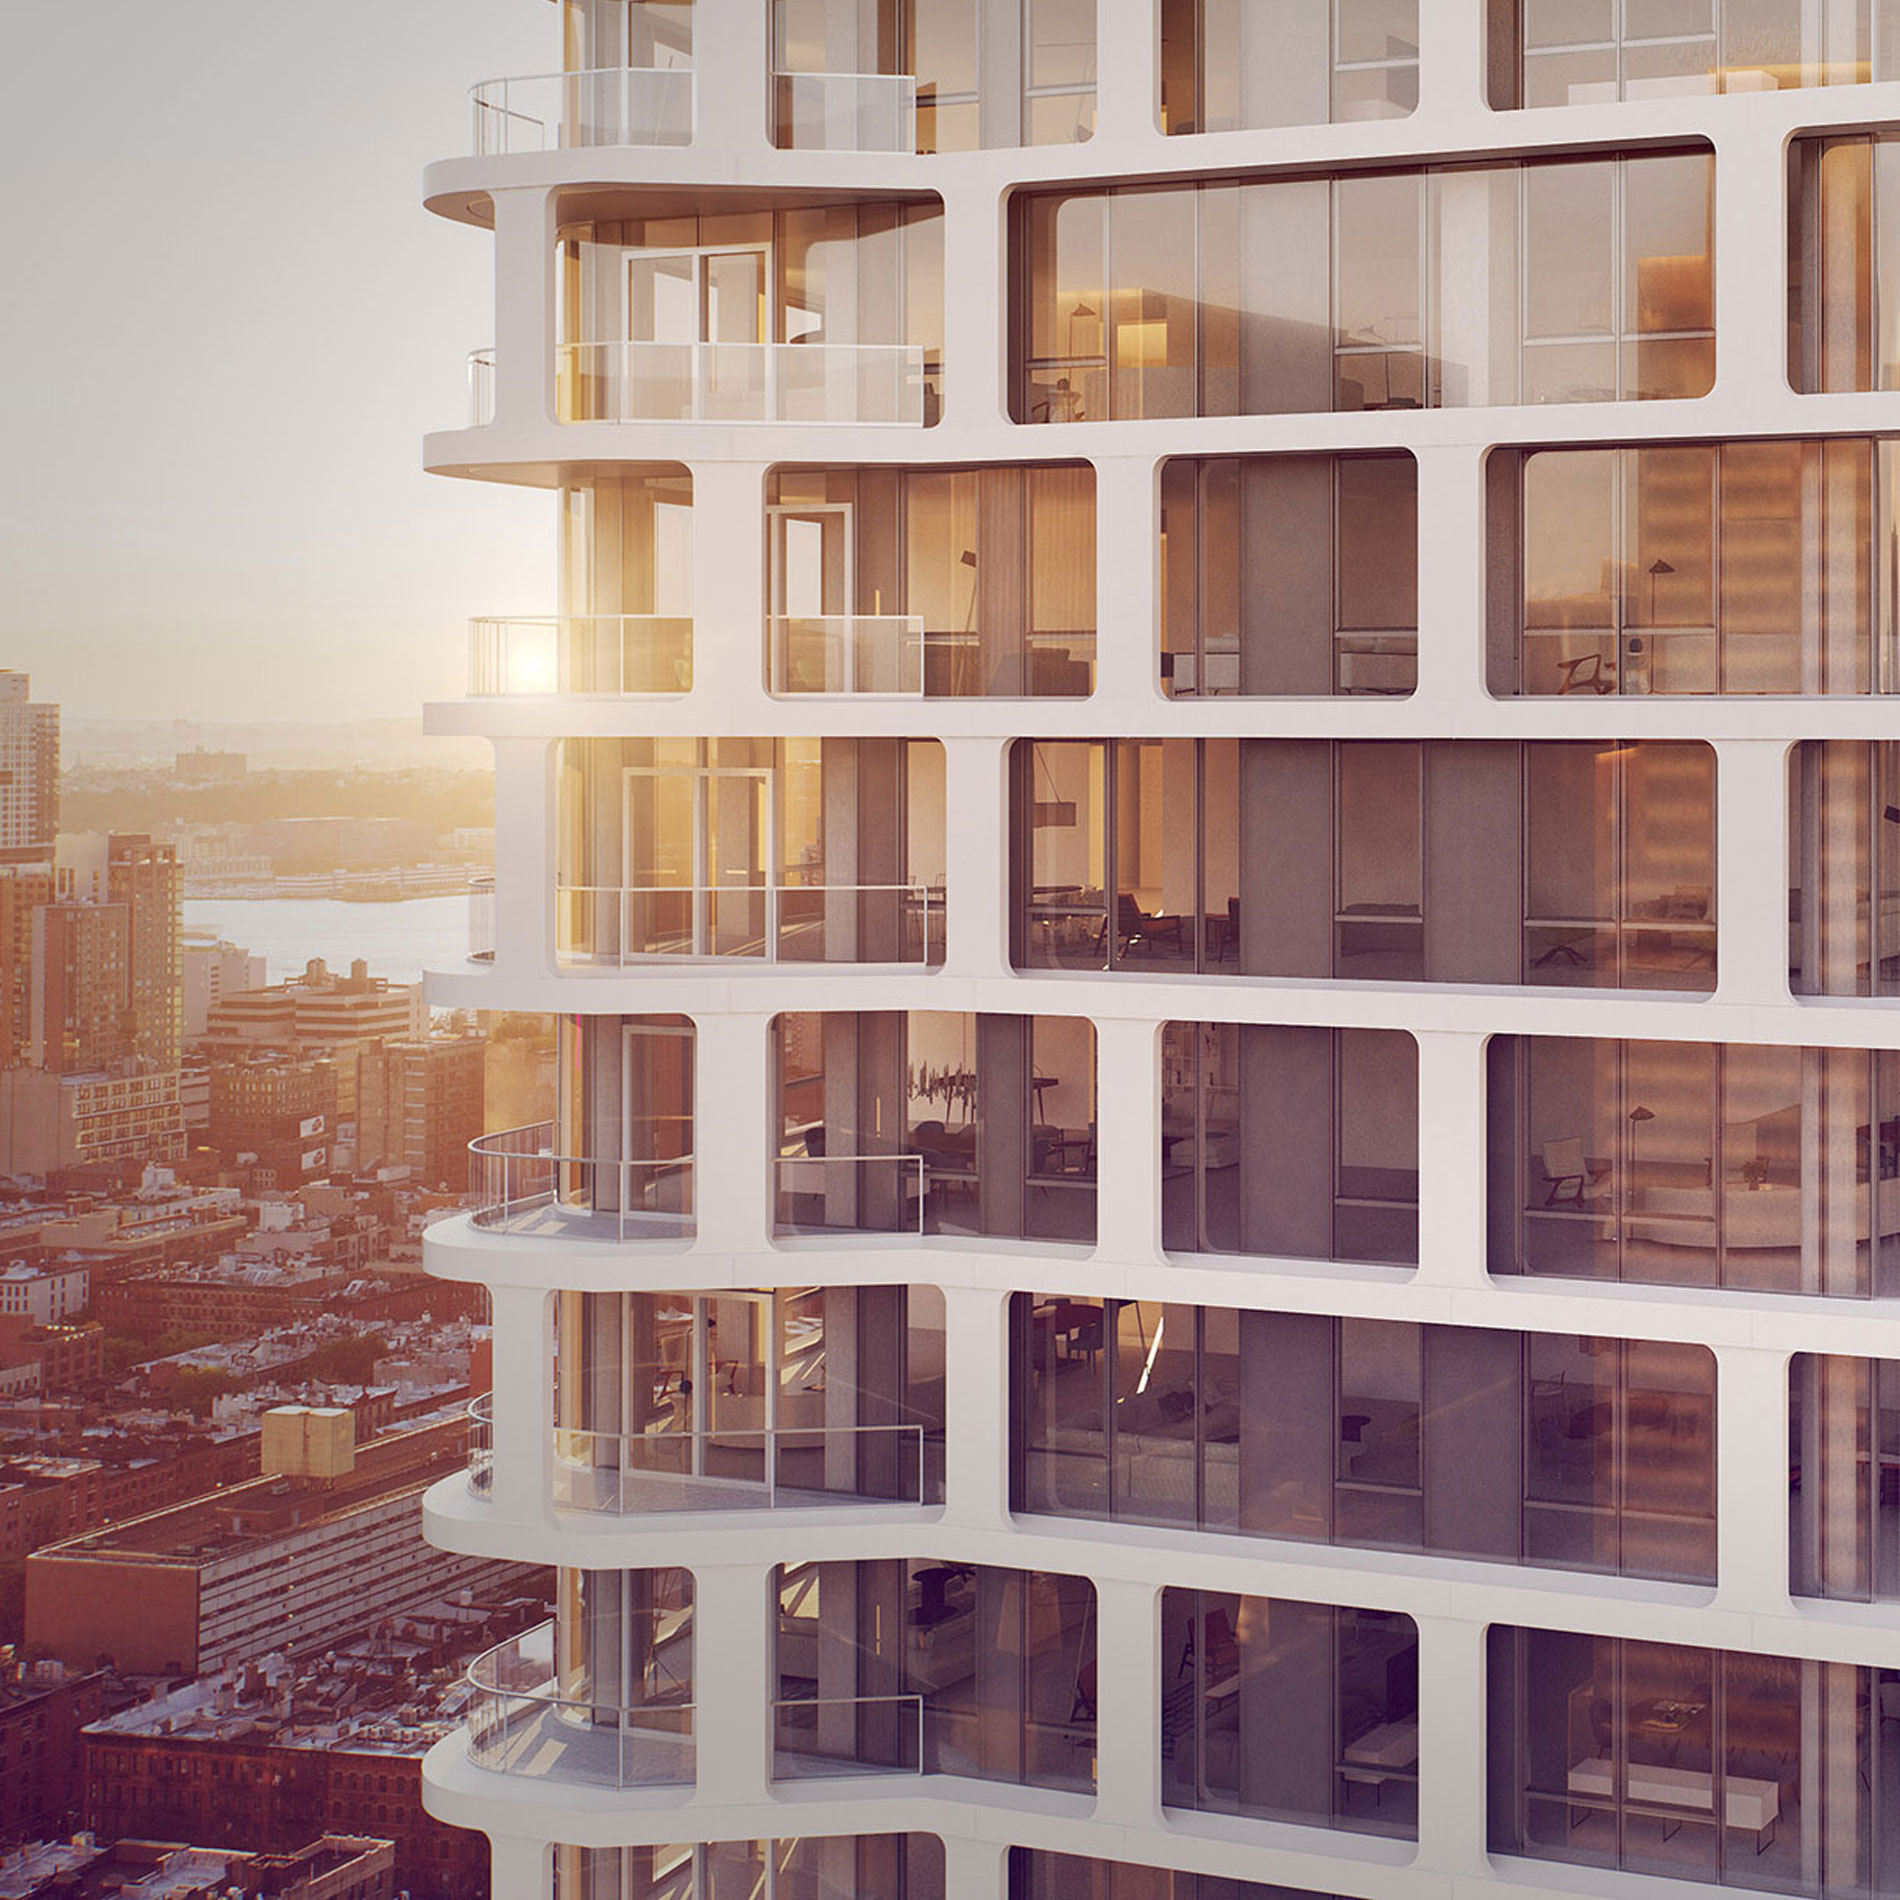 Architectural Rendering of the exterior of the 242 West 53rd Street project located in Midtown, New York City